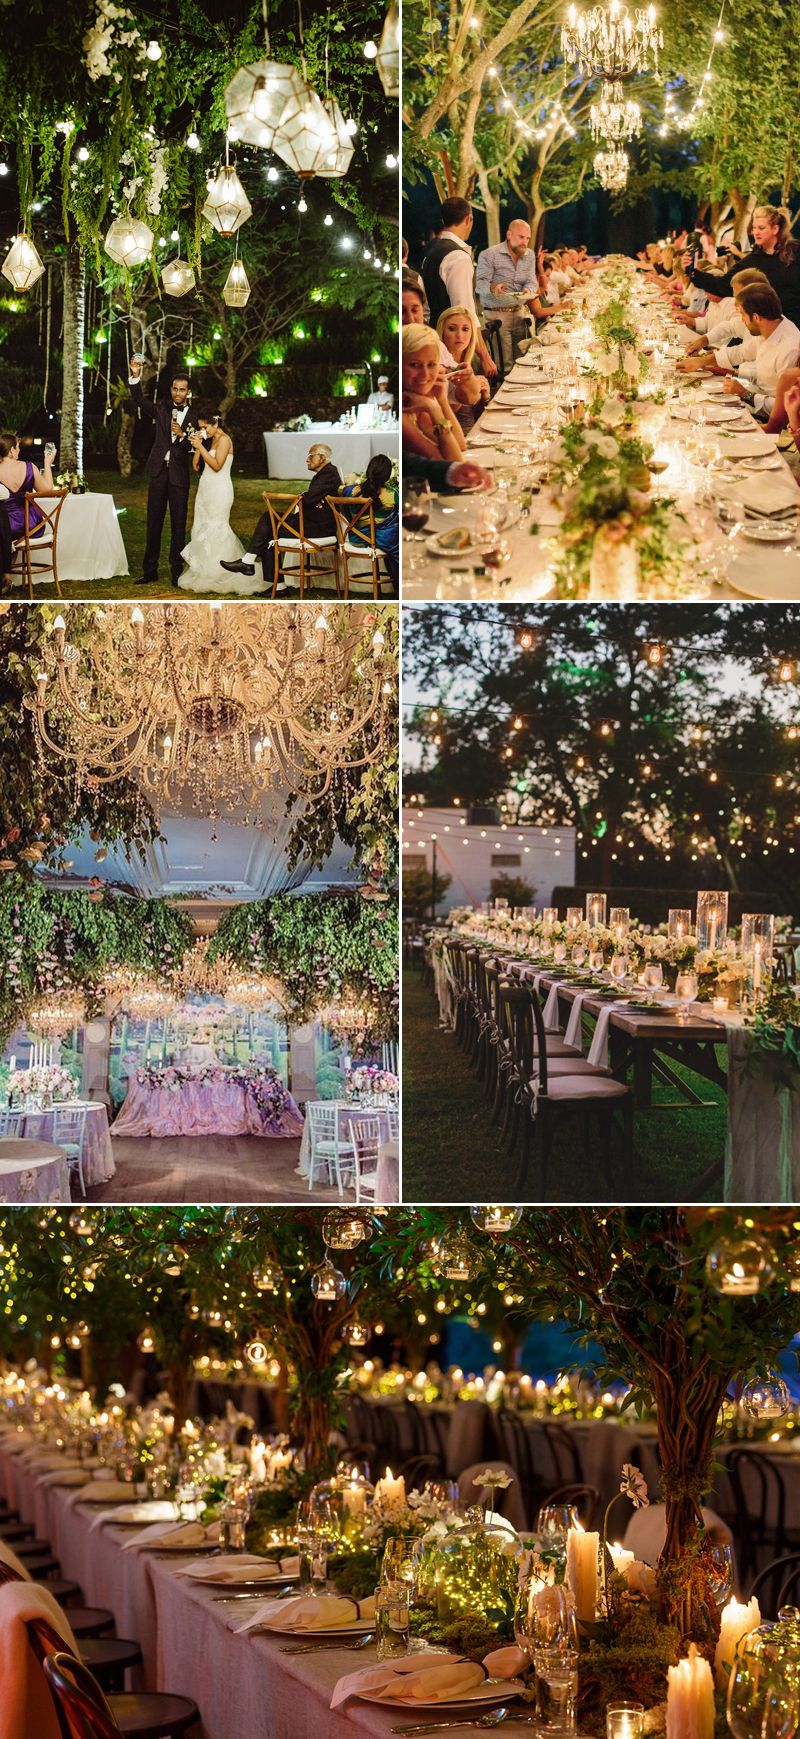 Christian wedding decoration designs   Decoration Ideas to Create a Magical Fairy Tale Reception